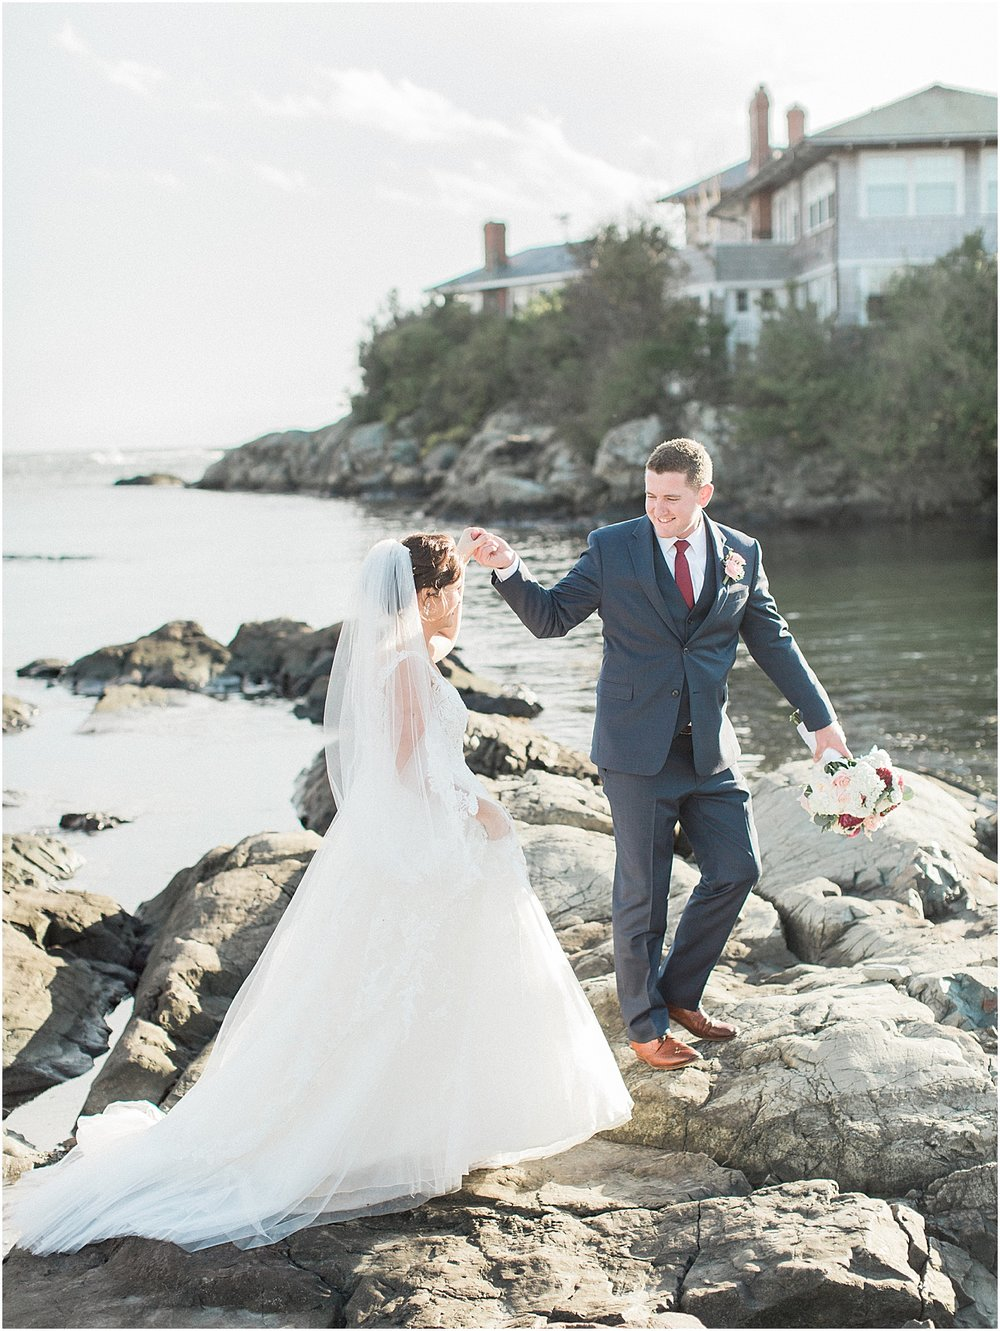 shannon_daniel_dan_atlantic_resort_saint_marys_st_mary_church_fall_newport_catholic_irish_cape_cod_boston_wedding_photographer_meredith_jane_photography_photo_1630.jpg